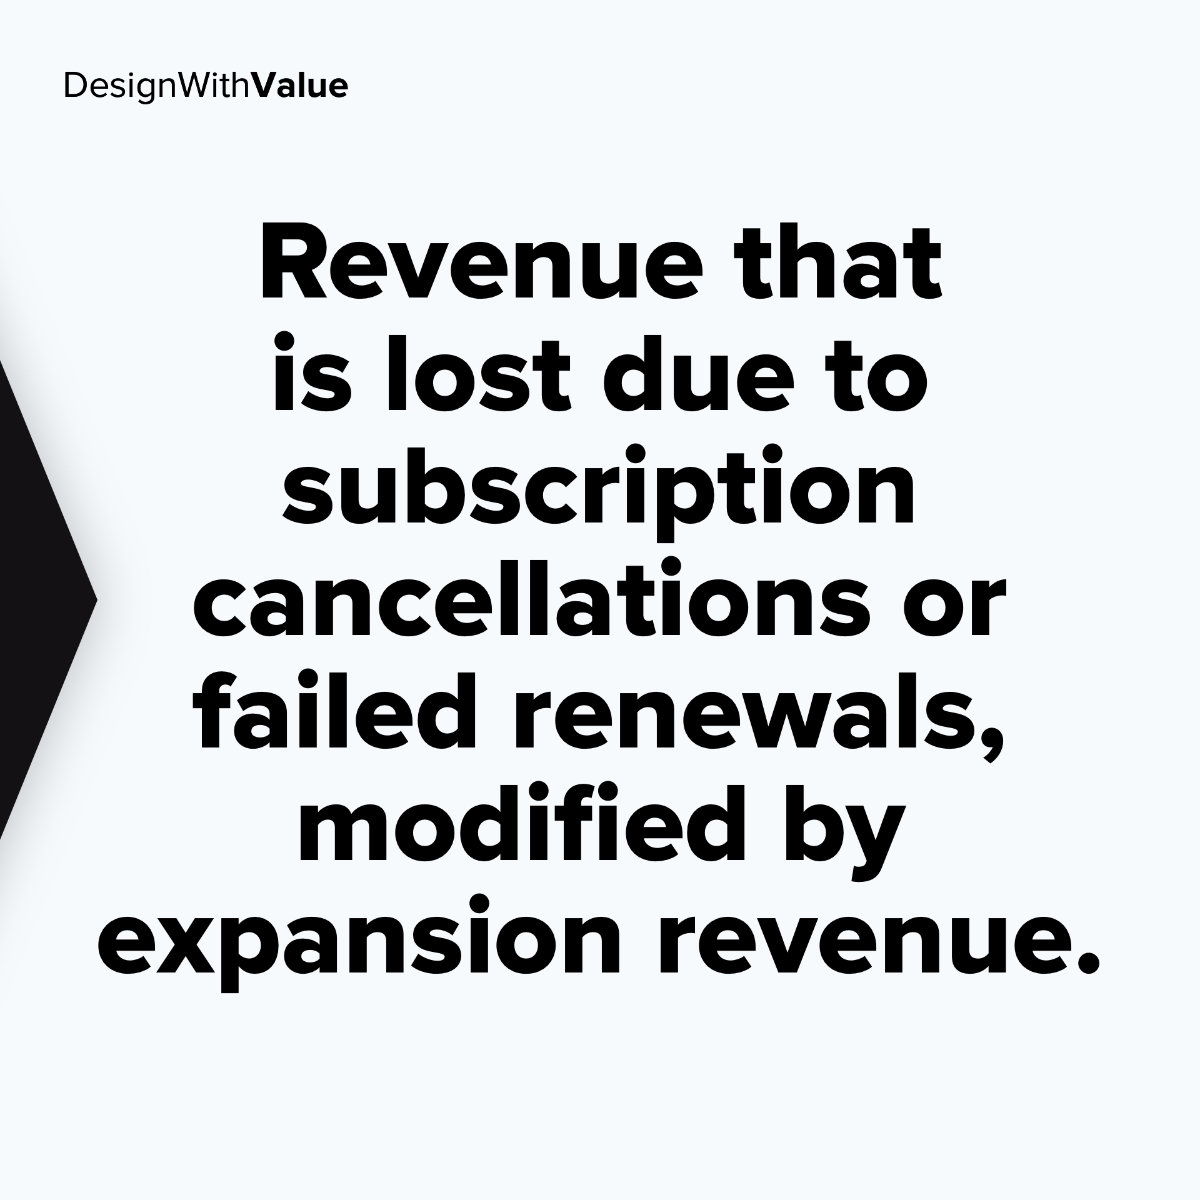 Revenue that is lost due to subscription cancellations or failed renewals, modified by expansion revenue